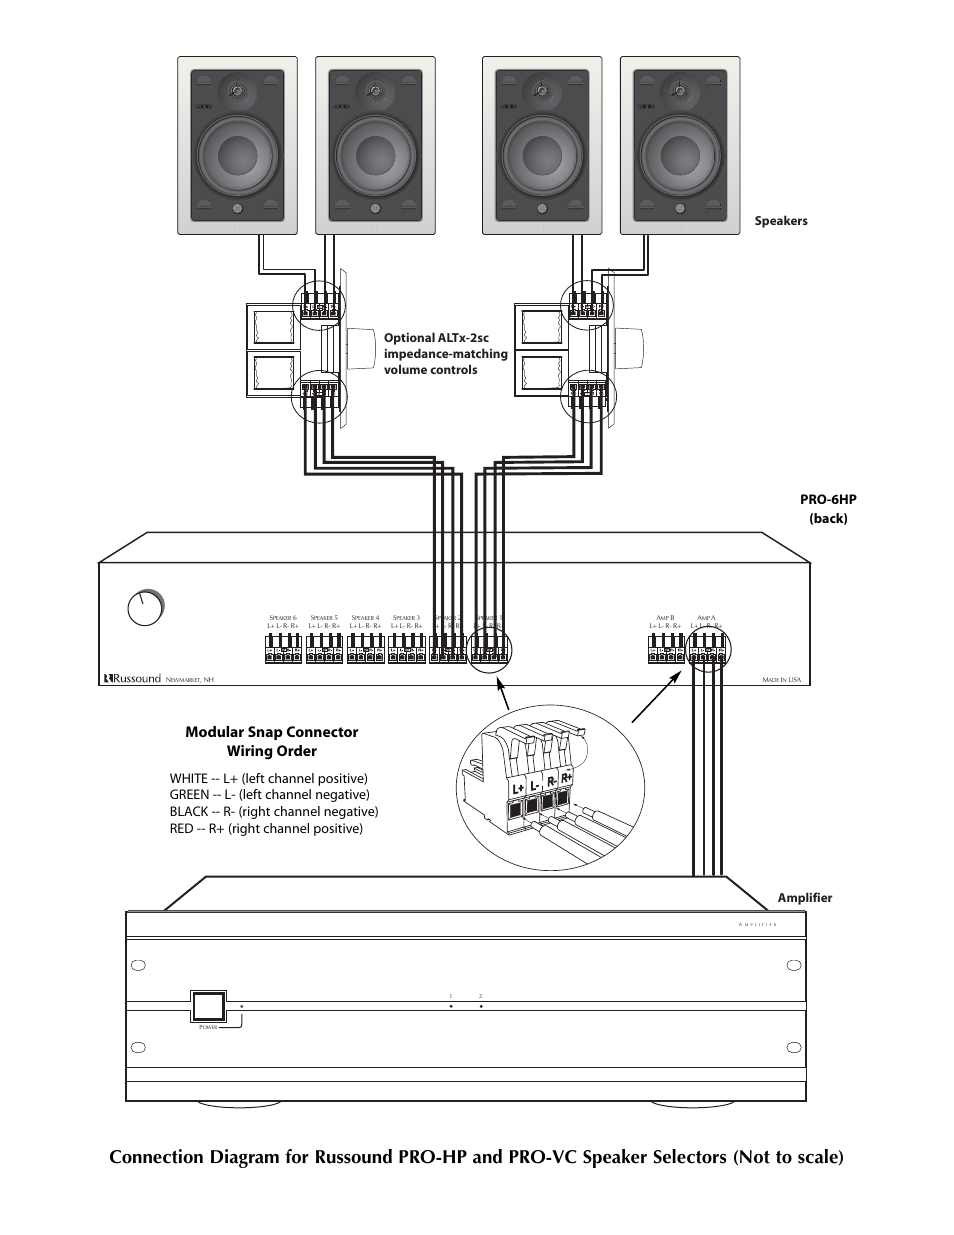 Modular snap connector wiring order, Amplifier, Audio amplifier | Russound  PRO User Manual | Page 3 / 4